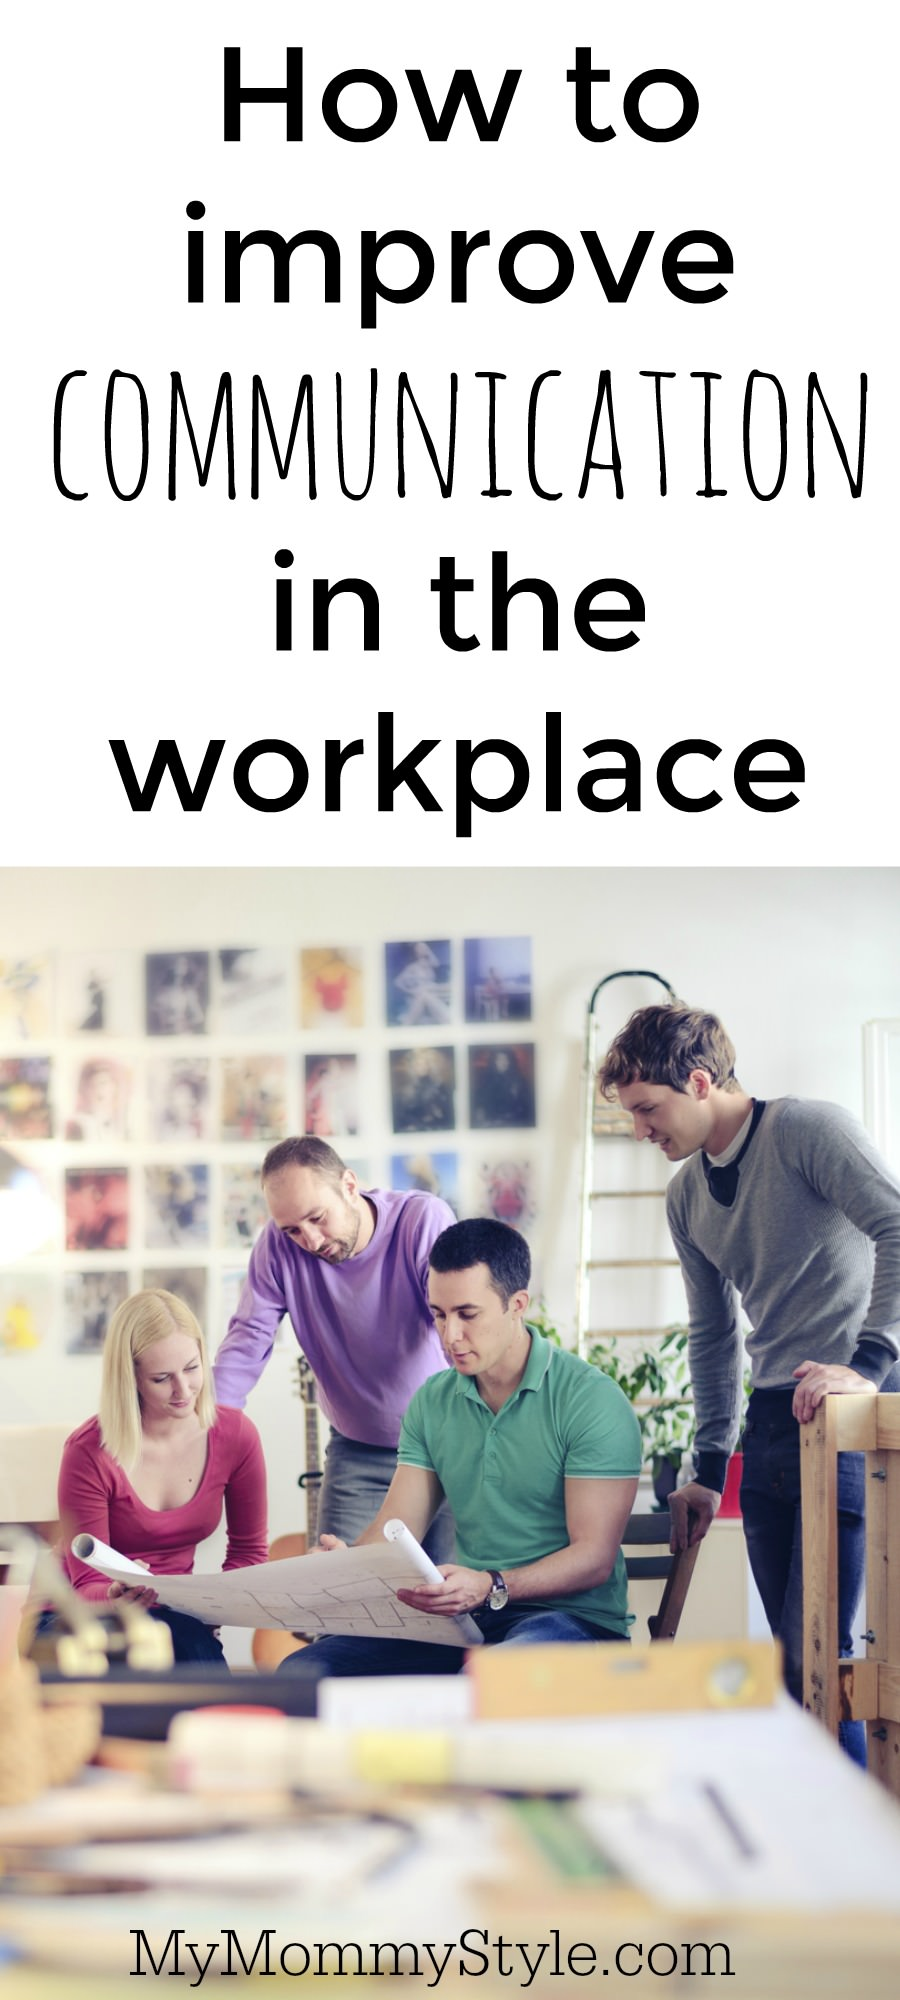 communication issues in the workplace essay